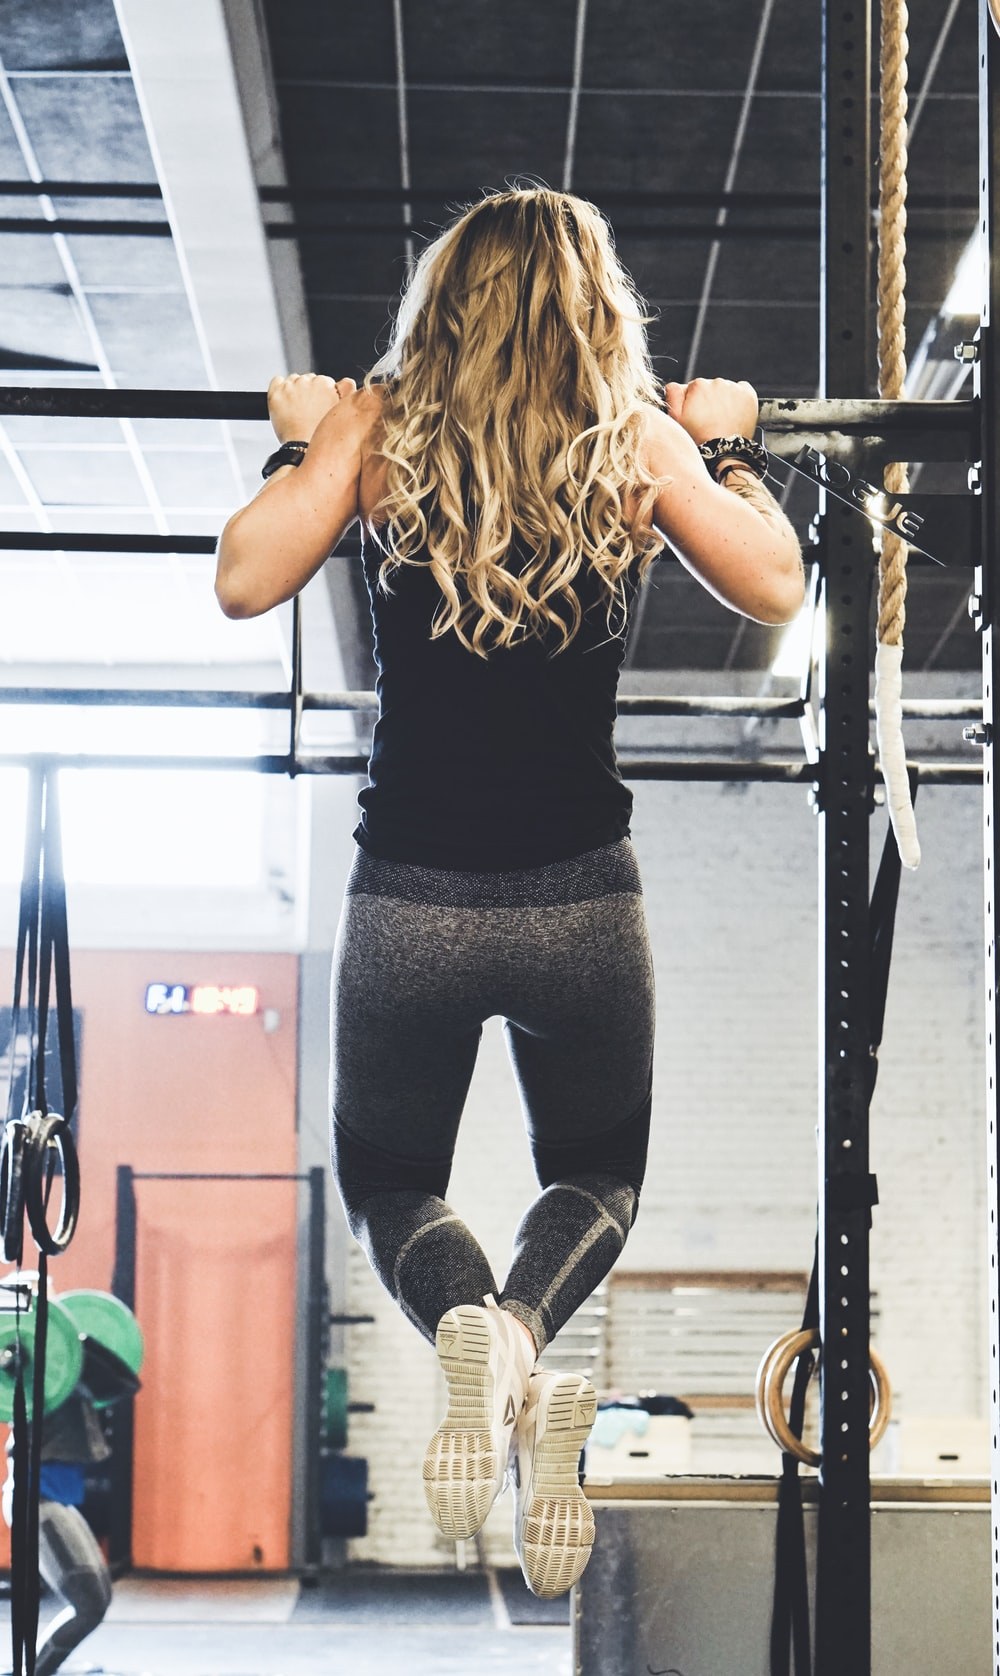 woman working out using black power rack